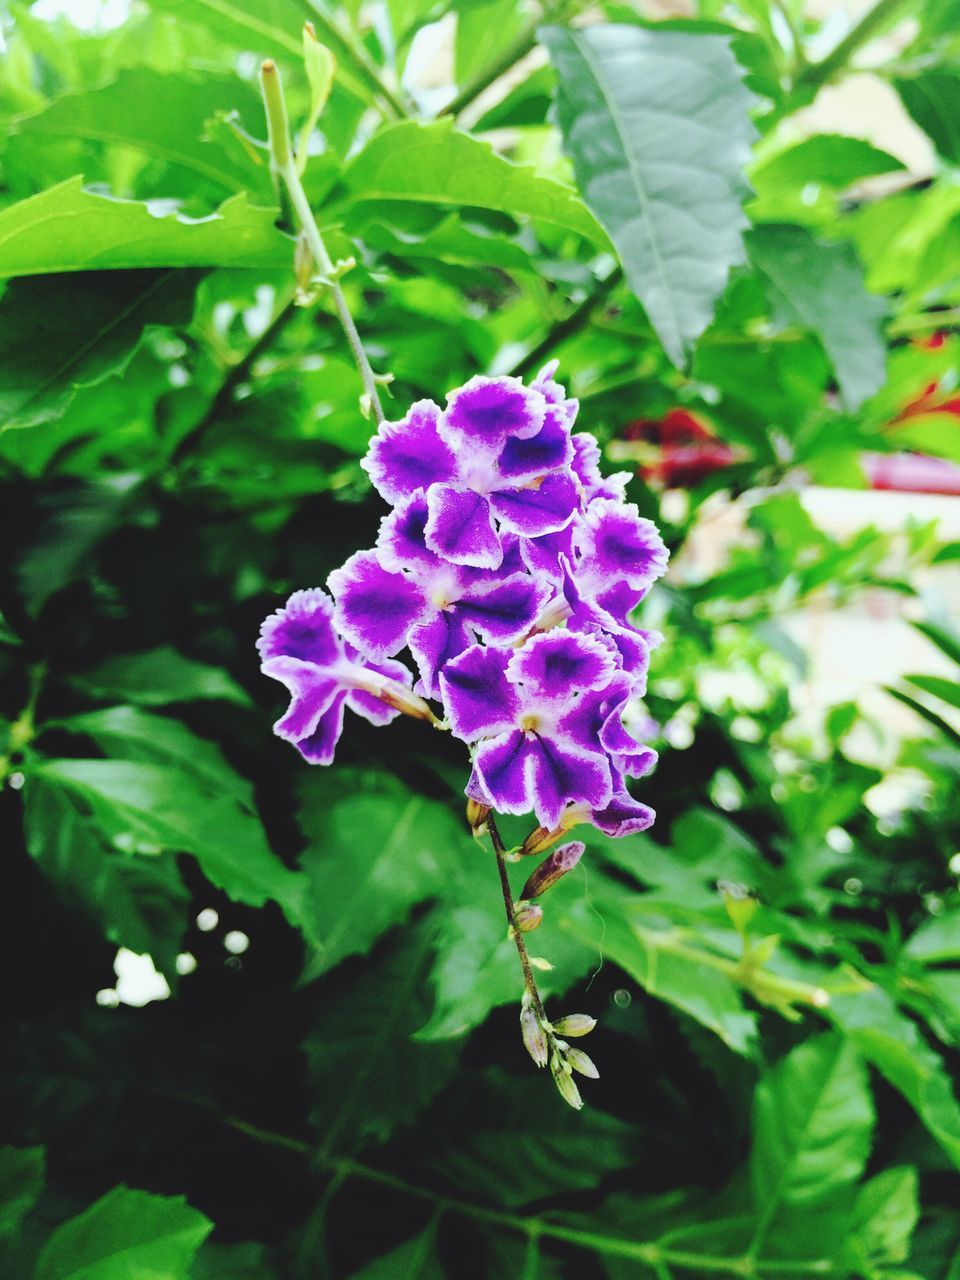 flower, growth, purple, beauty in nature, nature, plant, fragility, green color, day, outdoors, leaf, no people, freshness, blooming, close-up, flower head